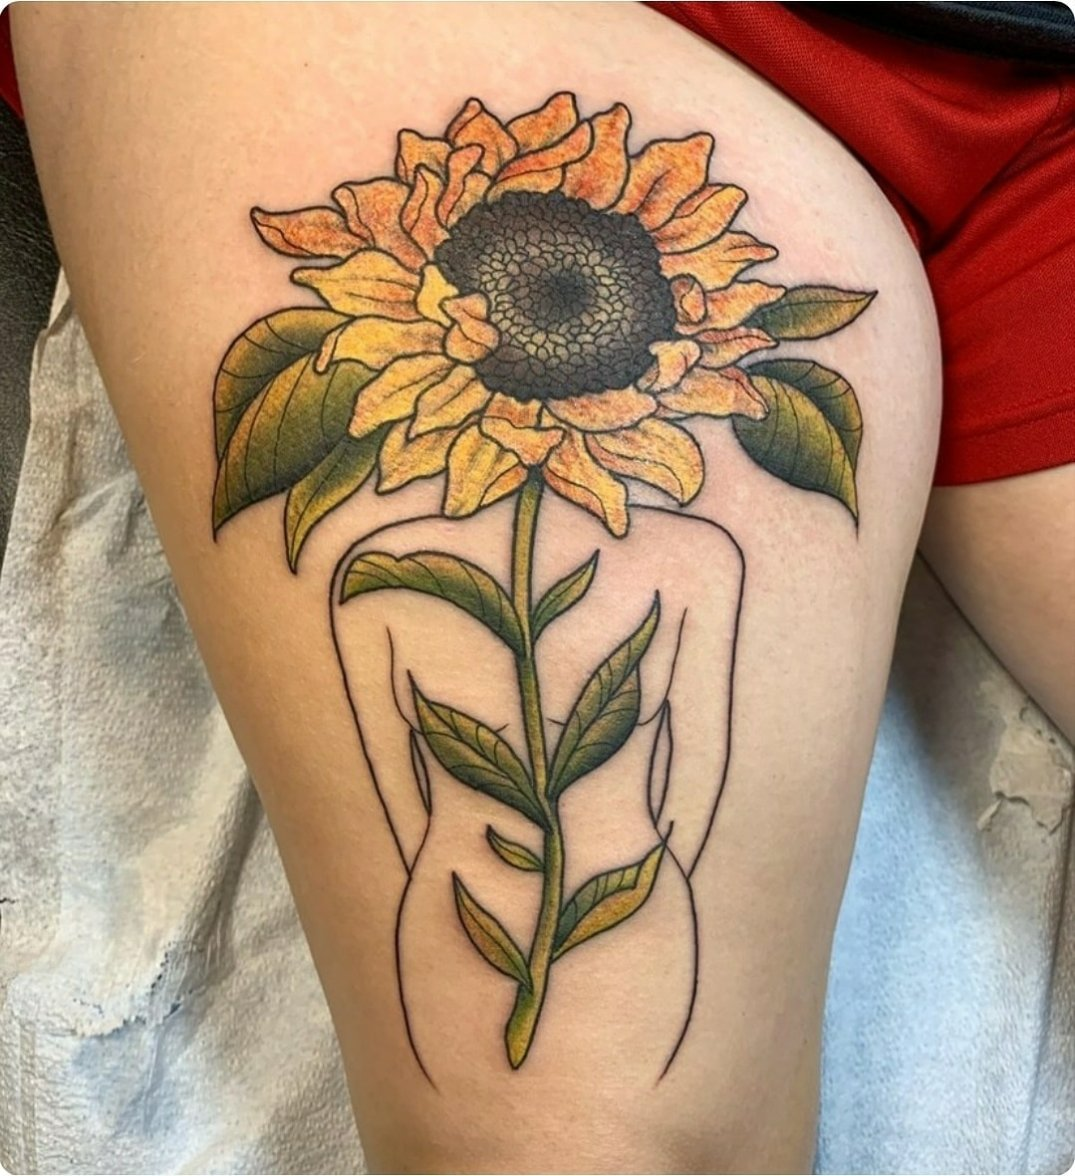 Sunflower lady by Chico Lou's Fine Tattoos studio in Athens Georgia GA. Artist - Darya Kalantari